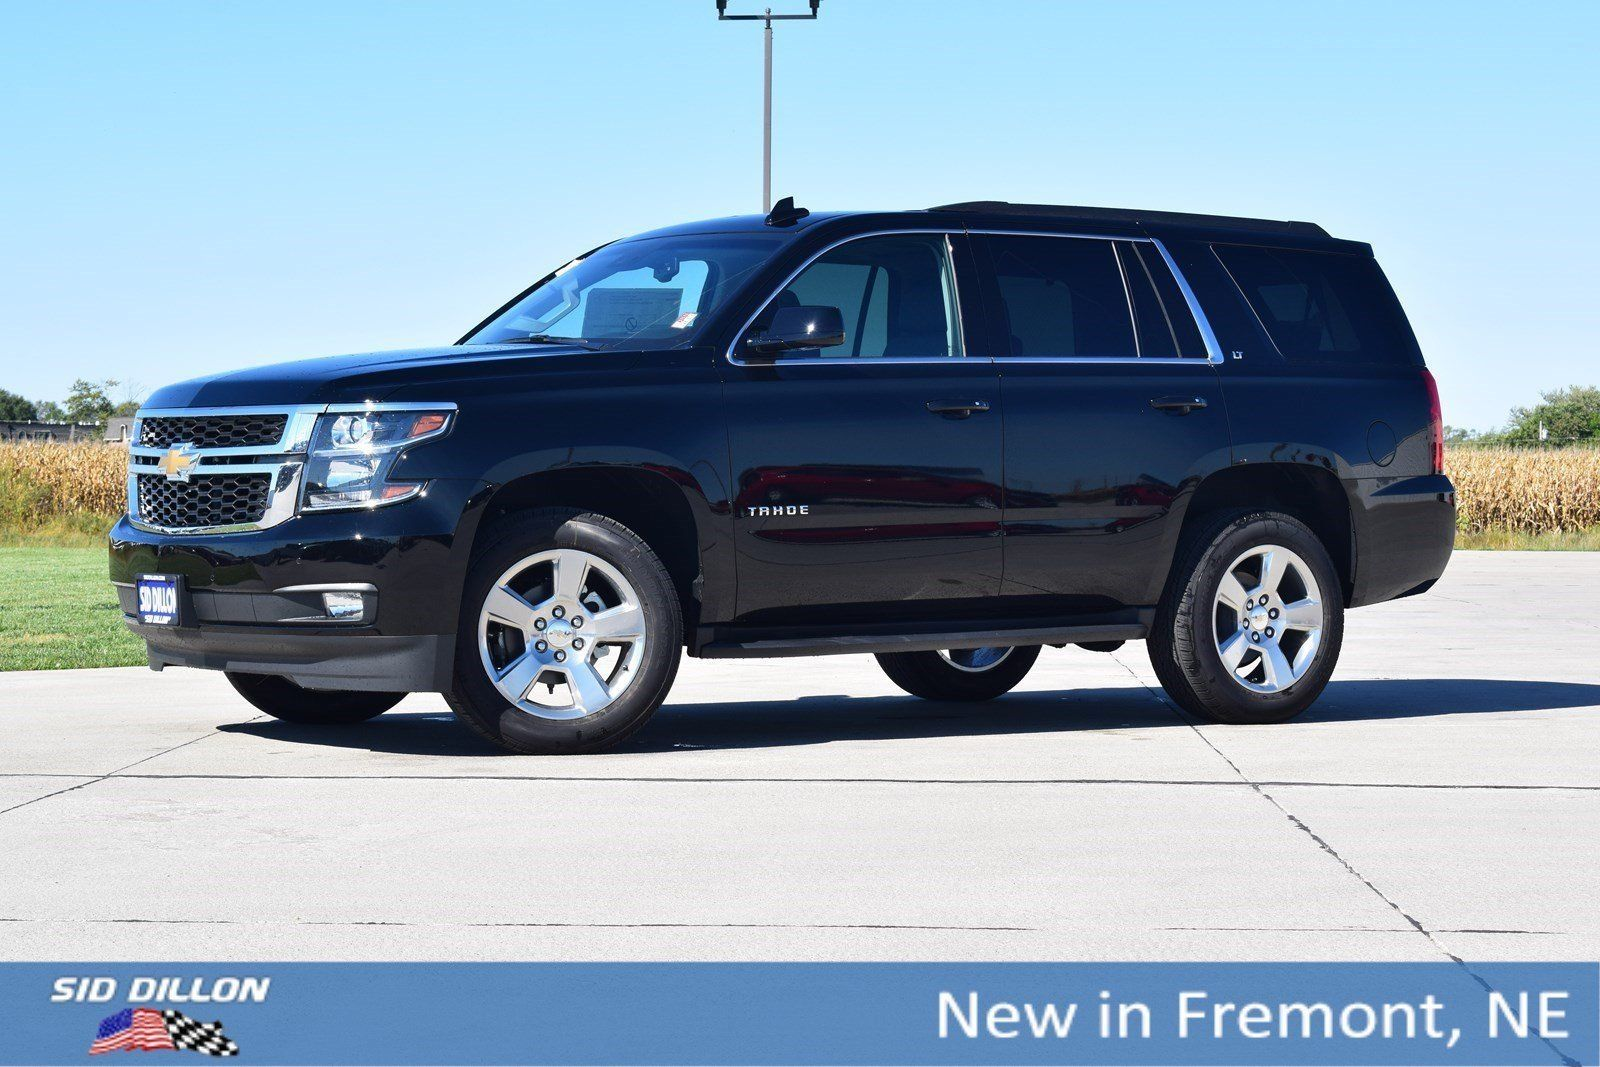 New 2019 Chevrolet Tahoe Price And Review Cars Review 2019